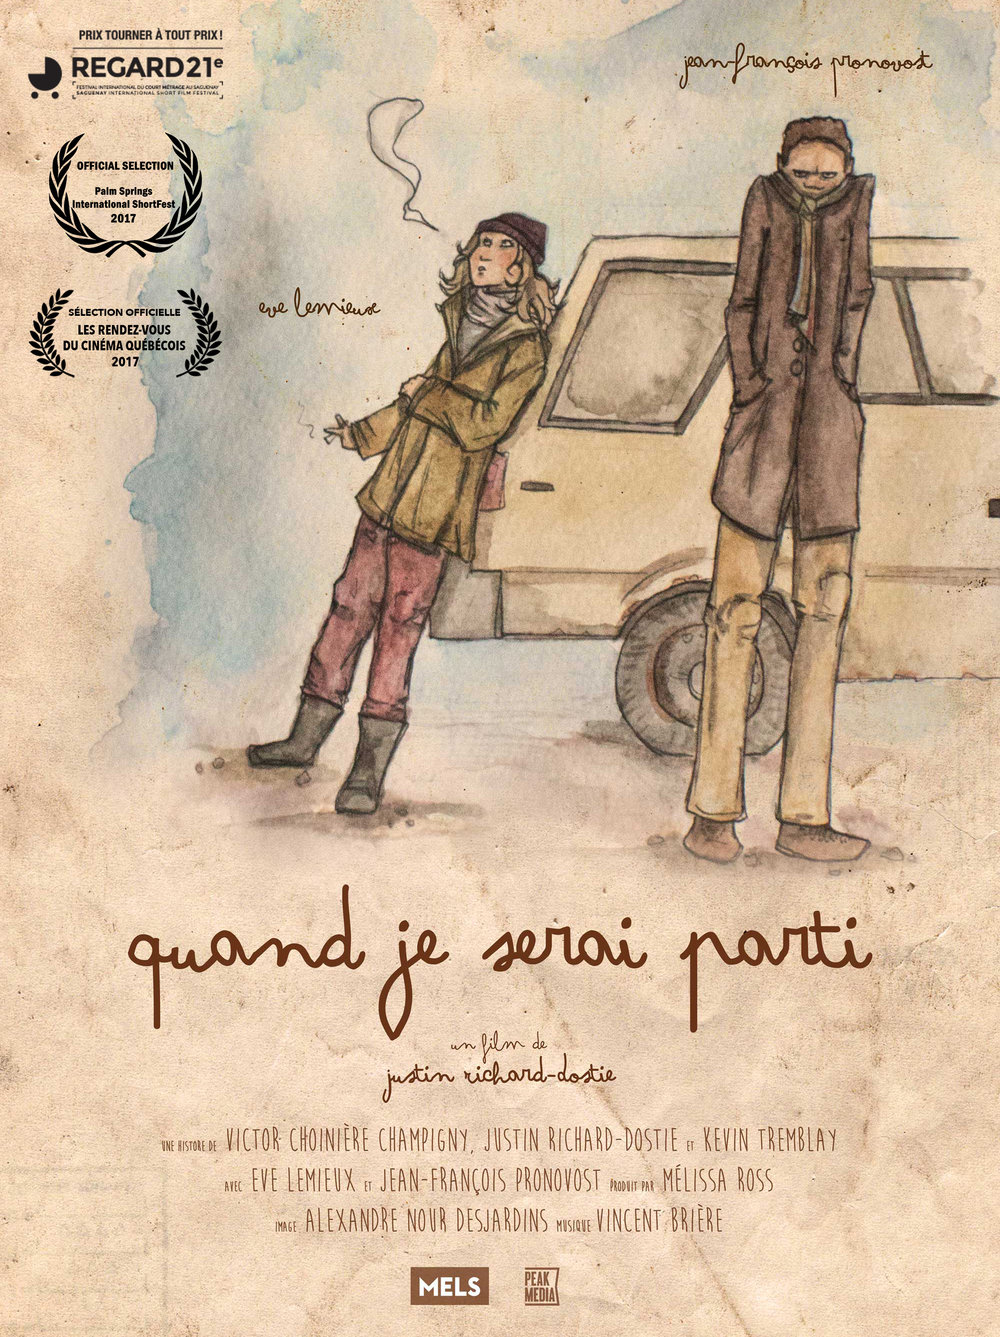 When I'll Be Gone (2016) - Fiction, Drama Synopsis Ariane's grandmother is dead and her brother has just broken up with his long-term girlfriend. On the way to the funeral, the siblings embark on a highway adventure. Director : Justin Richard-DostieProducer :  Melissa RossCinematographer : Alexandre Nour FestivalsPRIX TOURNER À TOUT PRIX! - FESTIVAL REGARD 2017PALM SPRINGS INTERNATIONAL FILM FESTIVAL 2017 LES RENDEZ-VOUS DU CINÉMA QUÉBÉCOIS / OFFICIAL COMPETITIONFESTIVAL FAST 2017